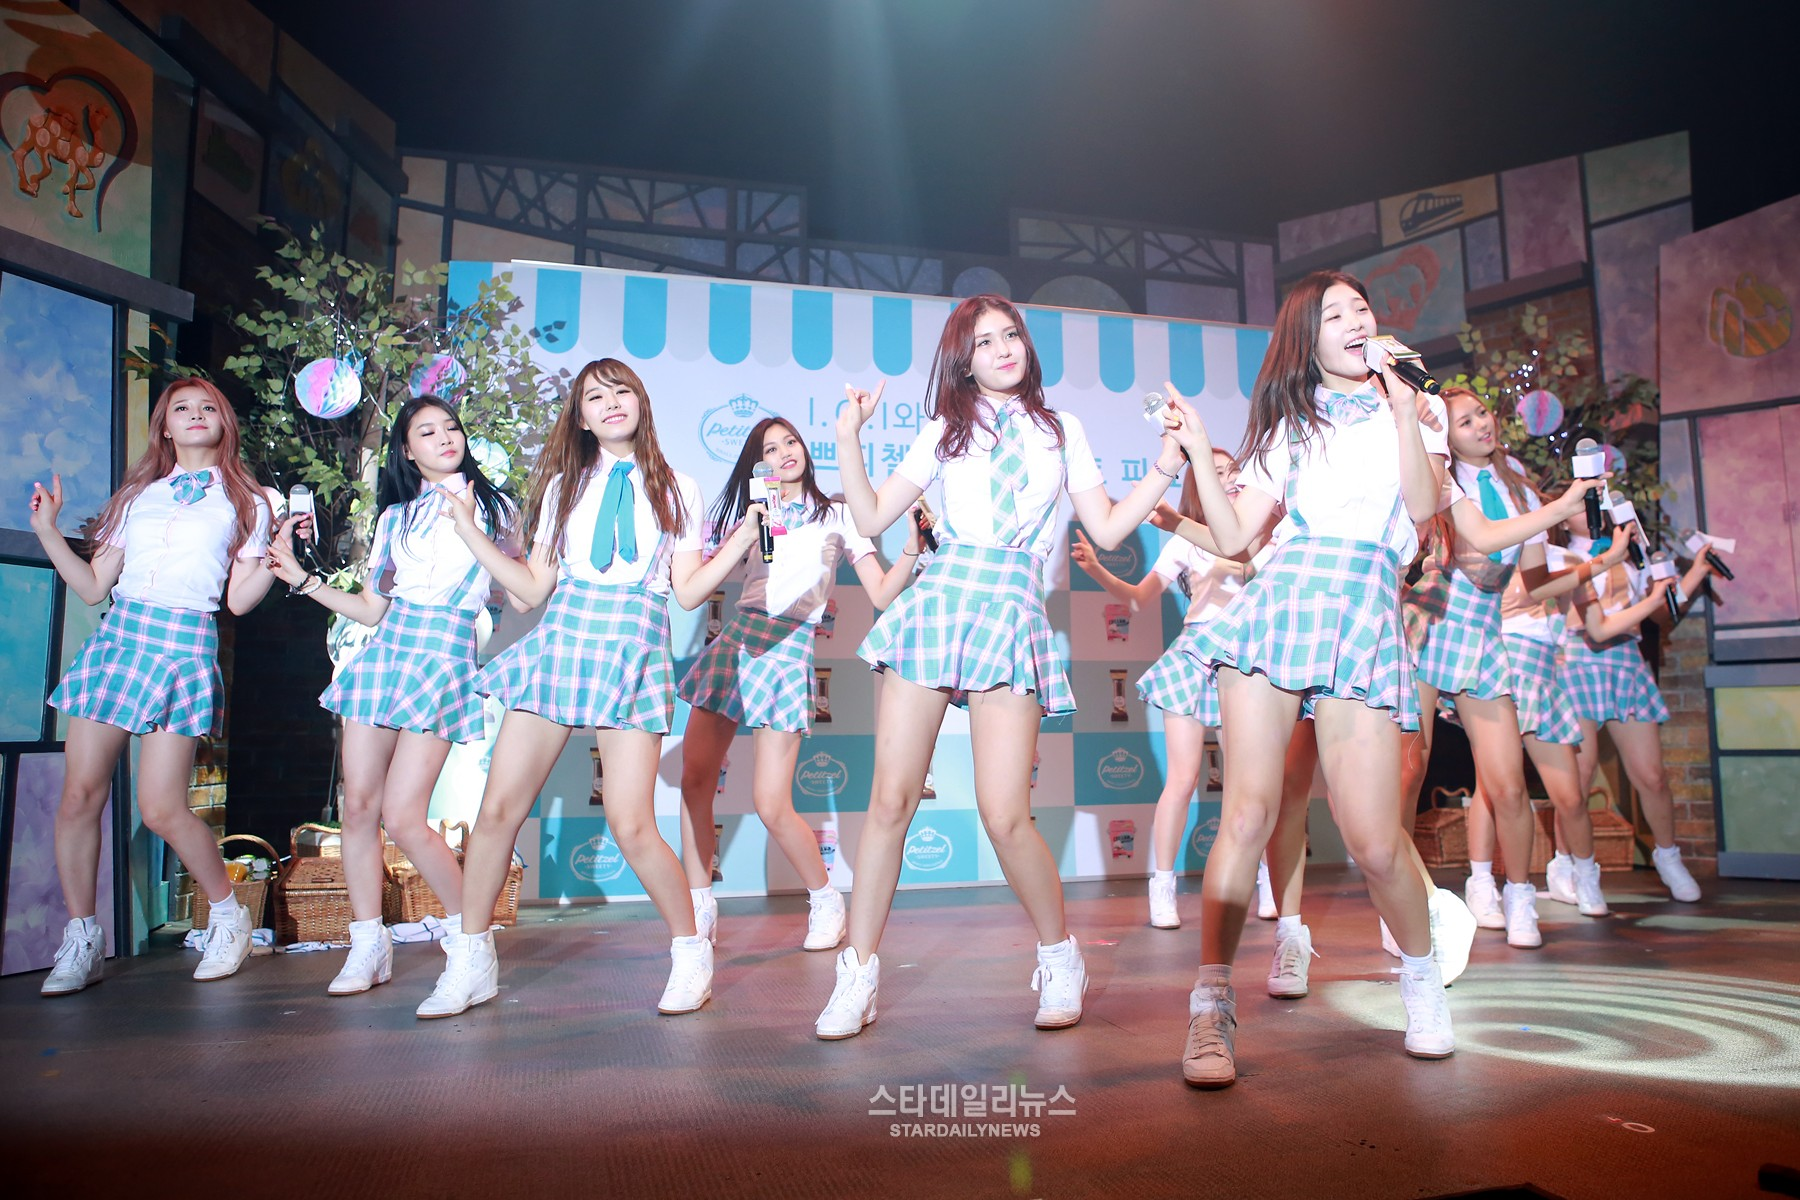 Ioi members dating - Etoile Costume & Party Center